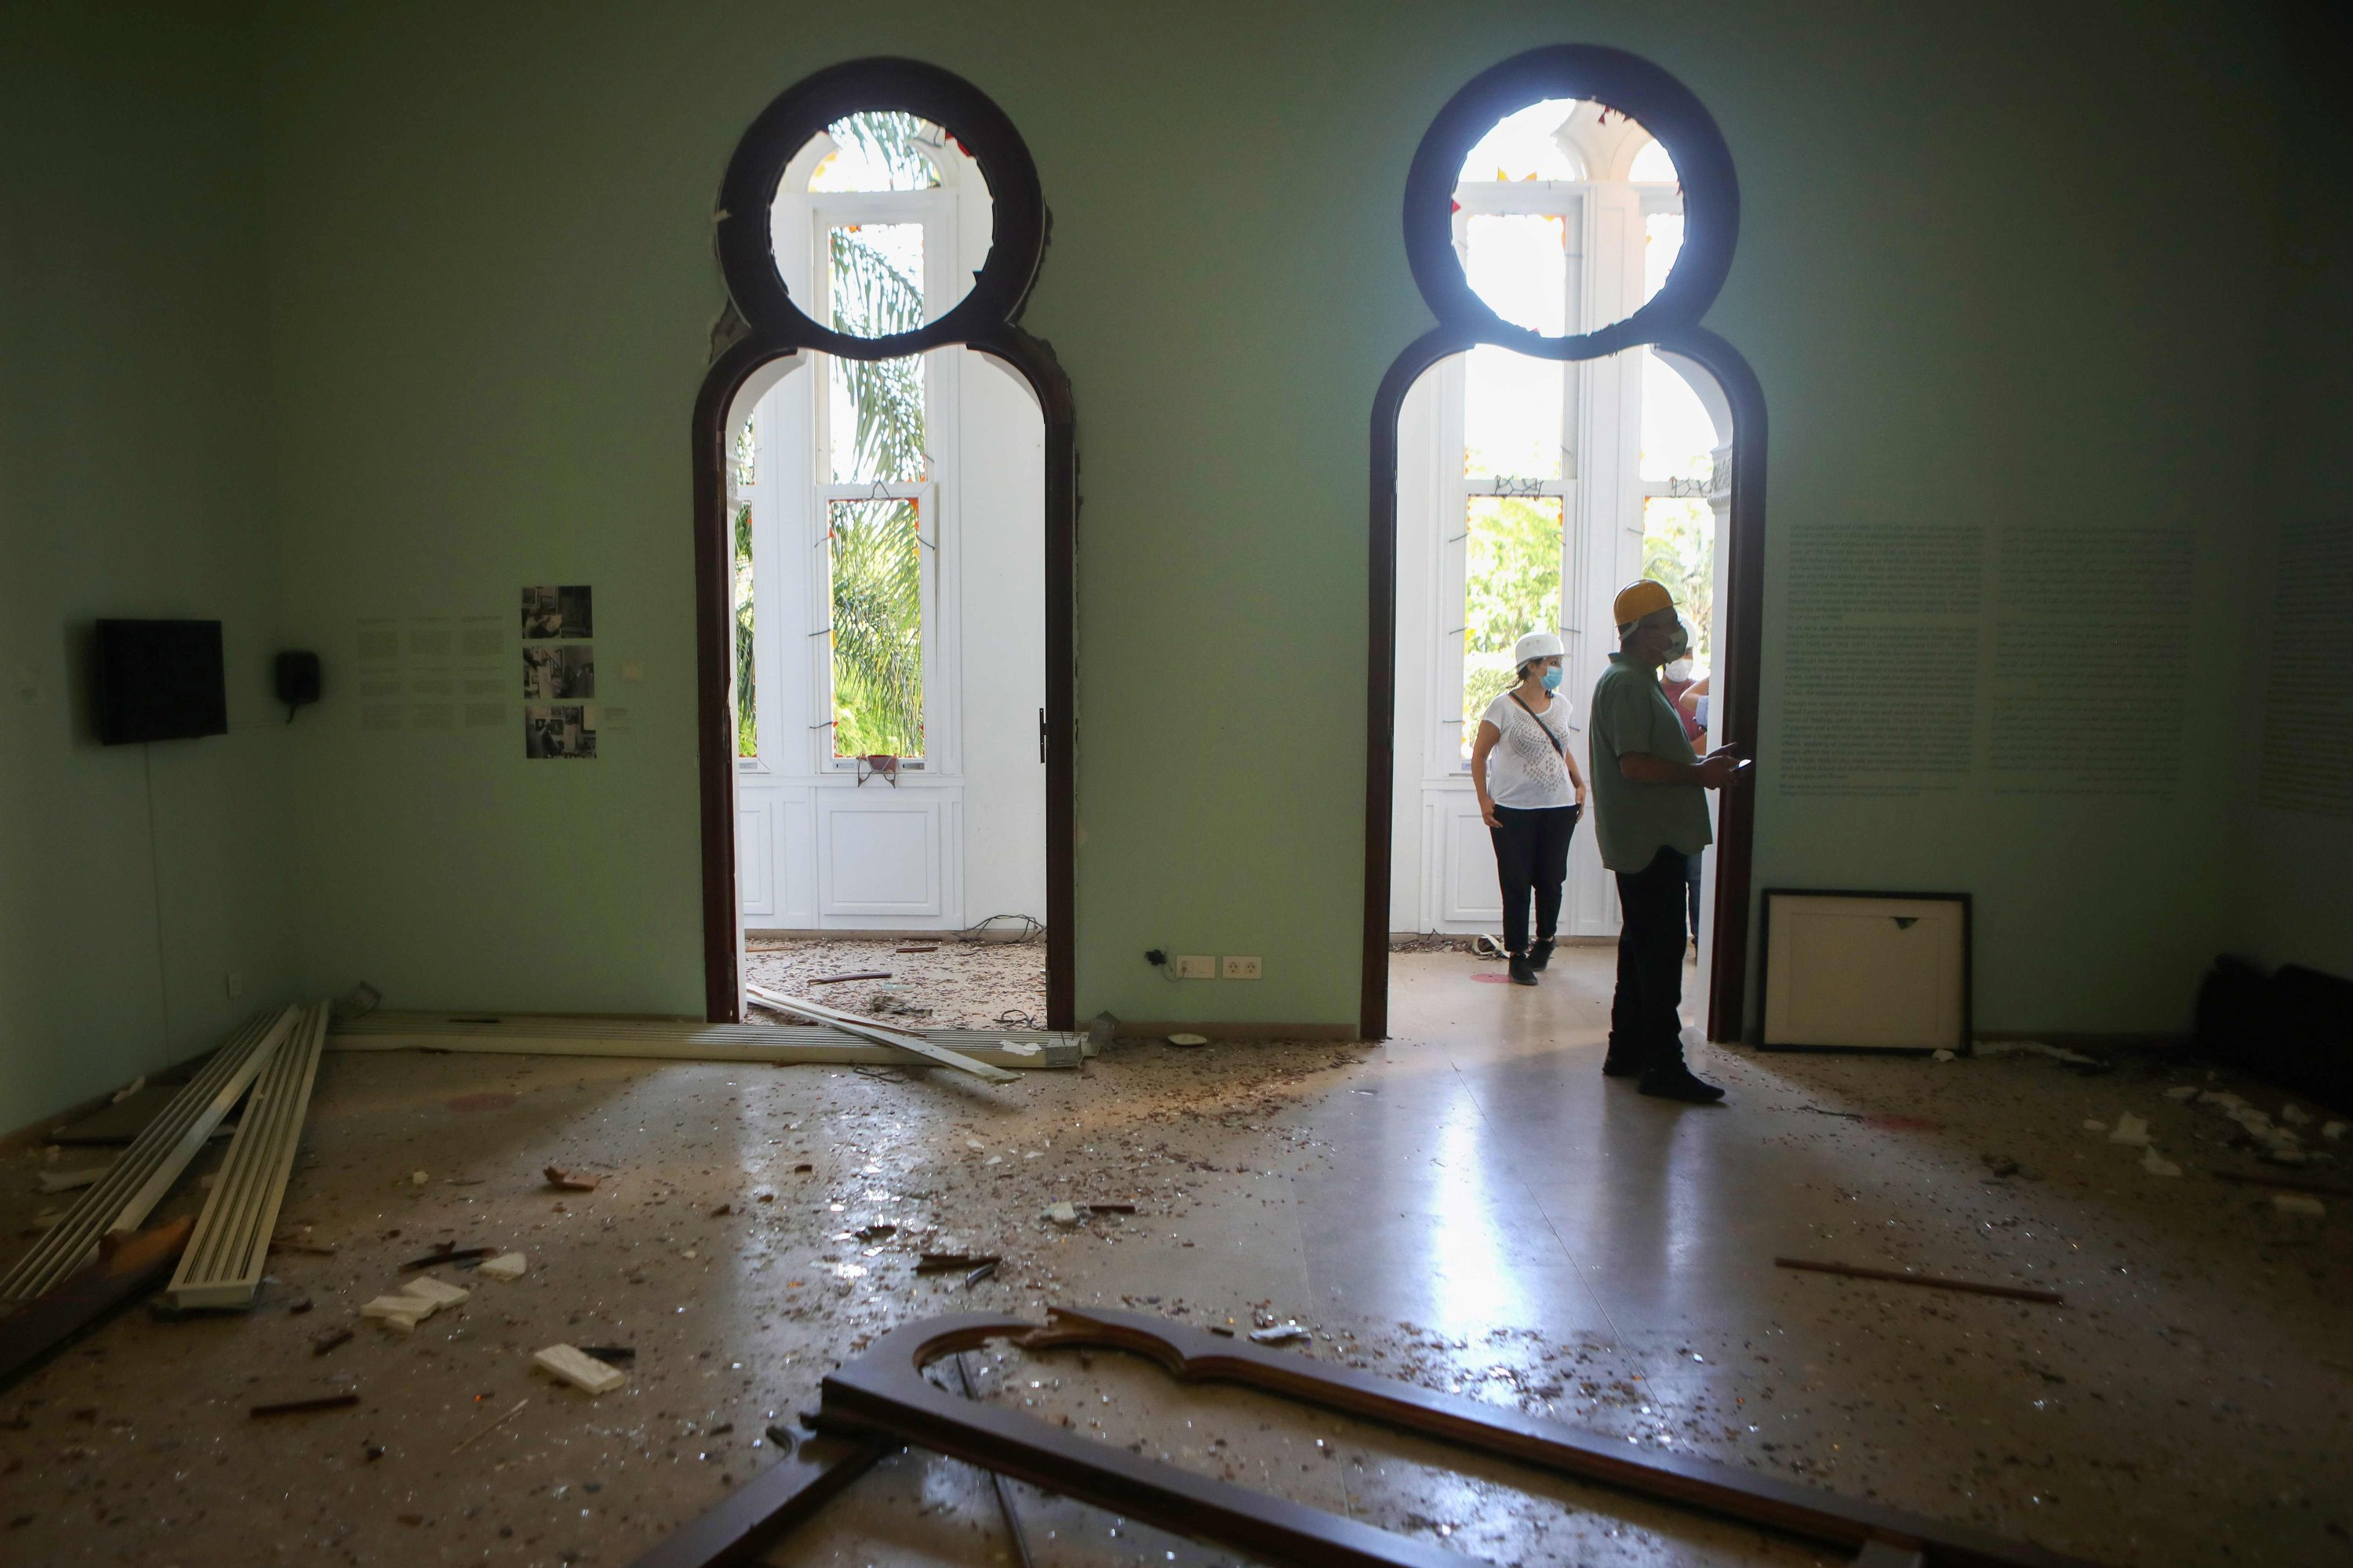 Staff inspect the damage at the Sursock Museum in the Lebanese capital Beirut on August 5, 2020. (AFP PHOTO)